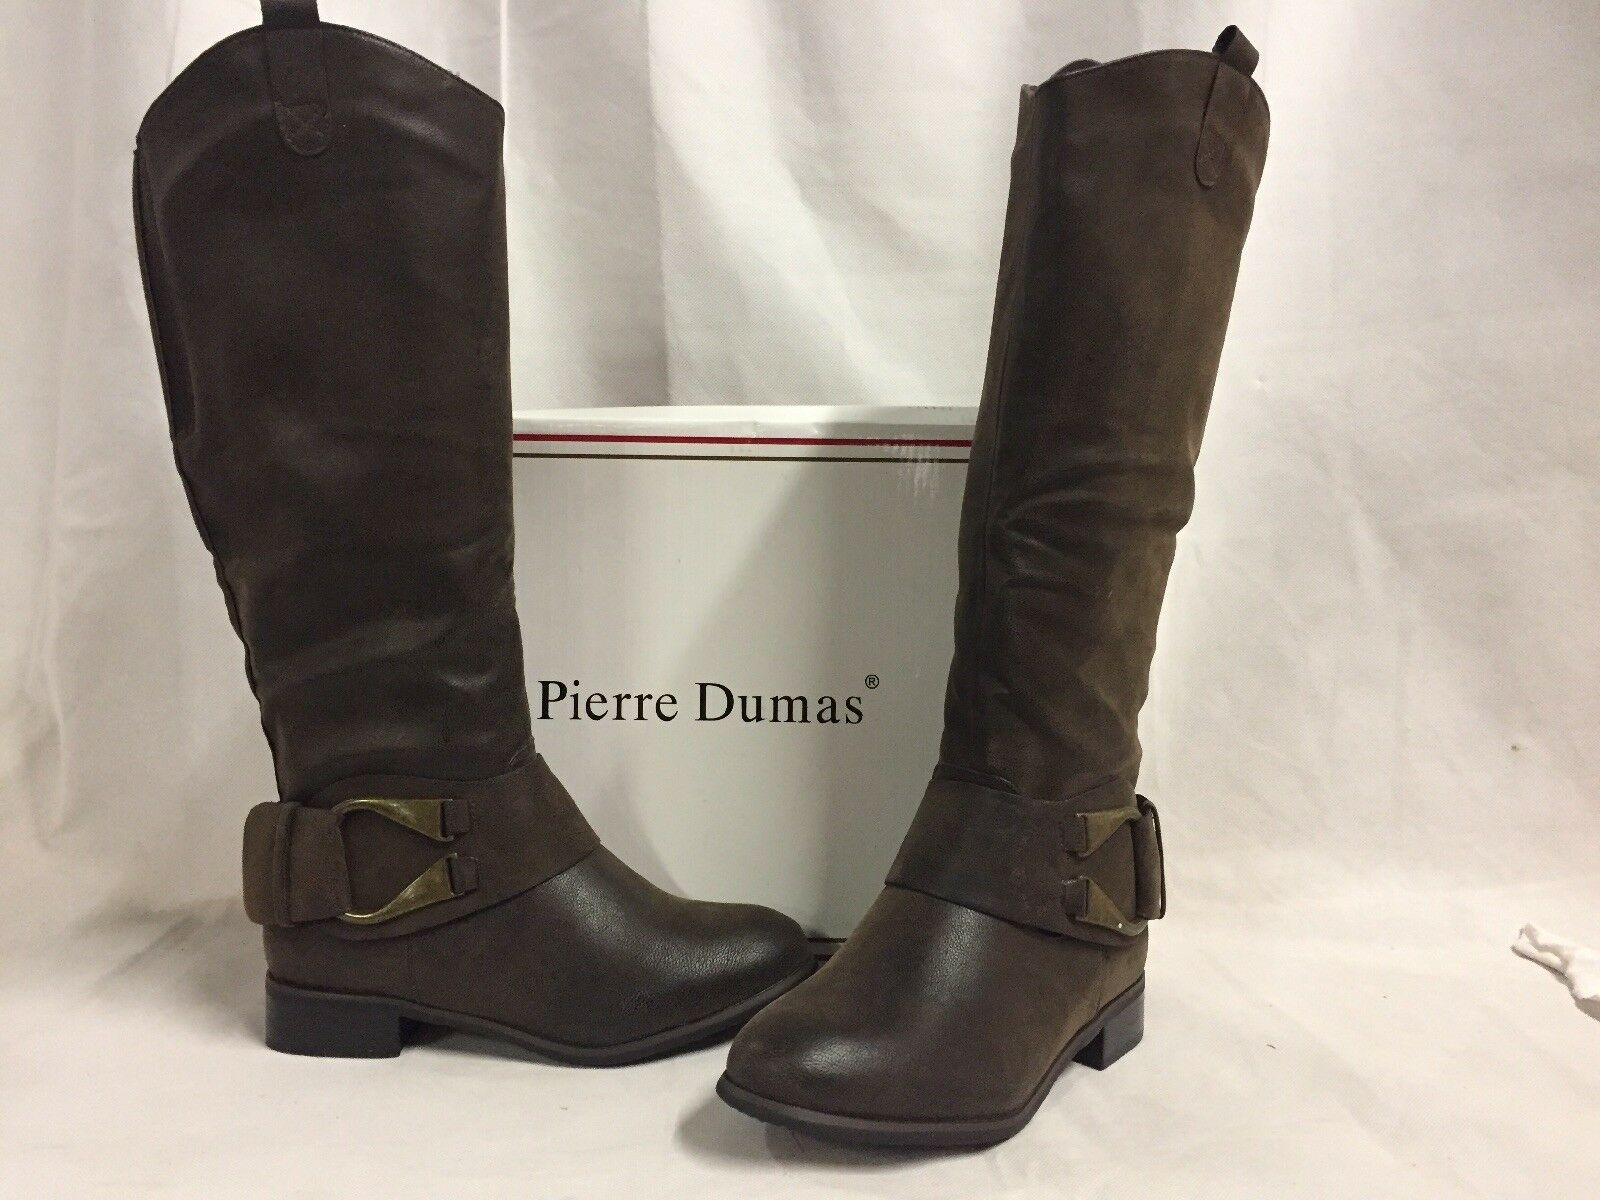 Pierre Dumas EMERSON Women's Brown Dress ridding Boots, Size 6 M